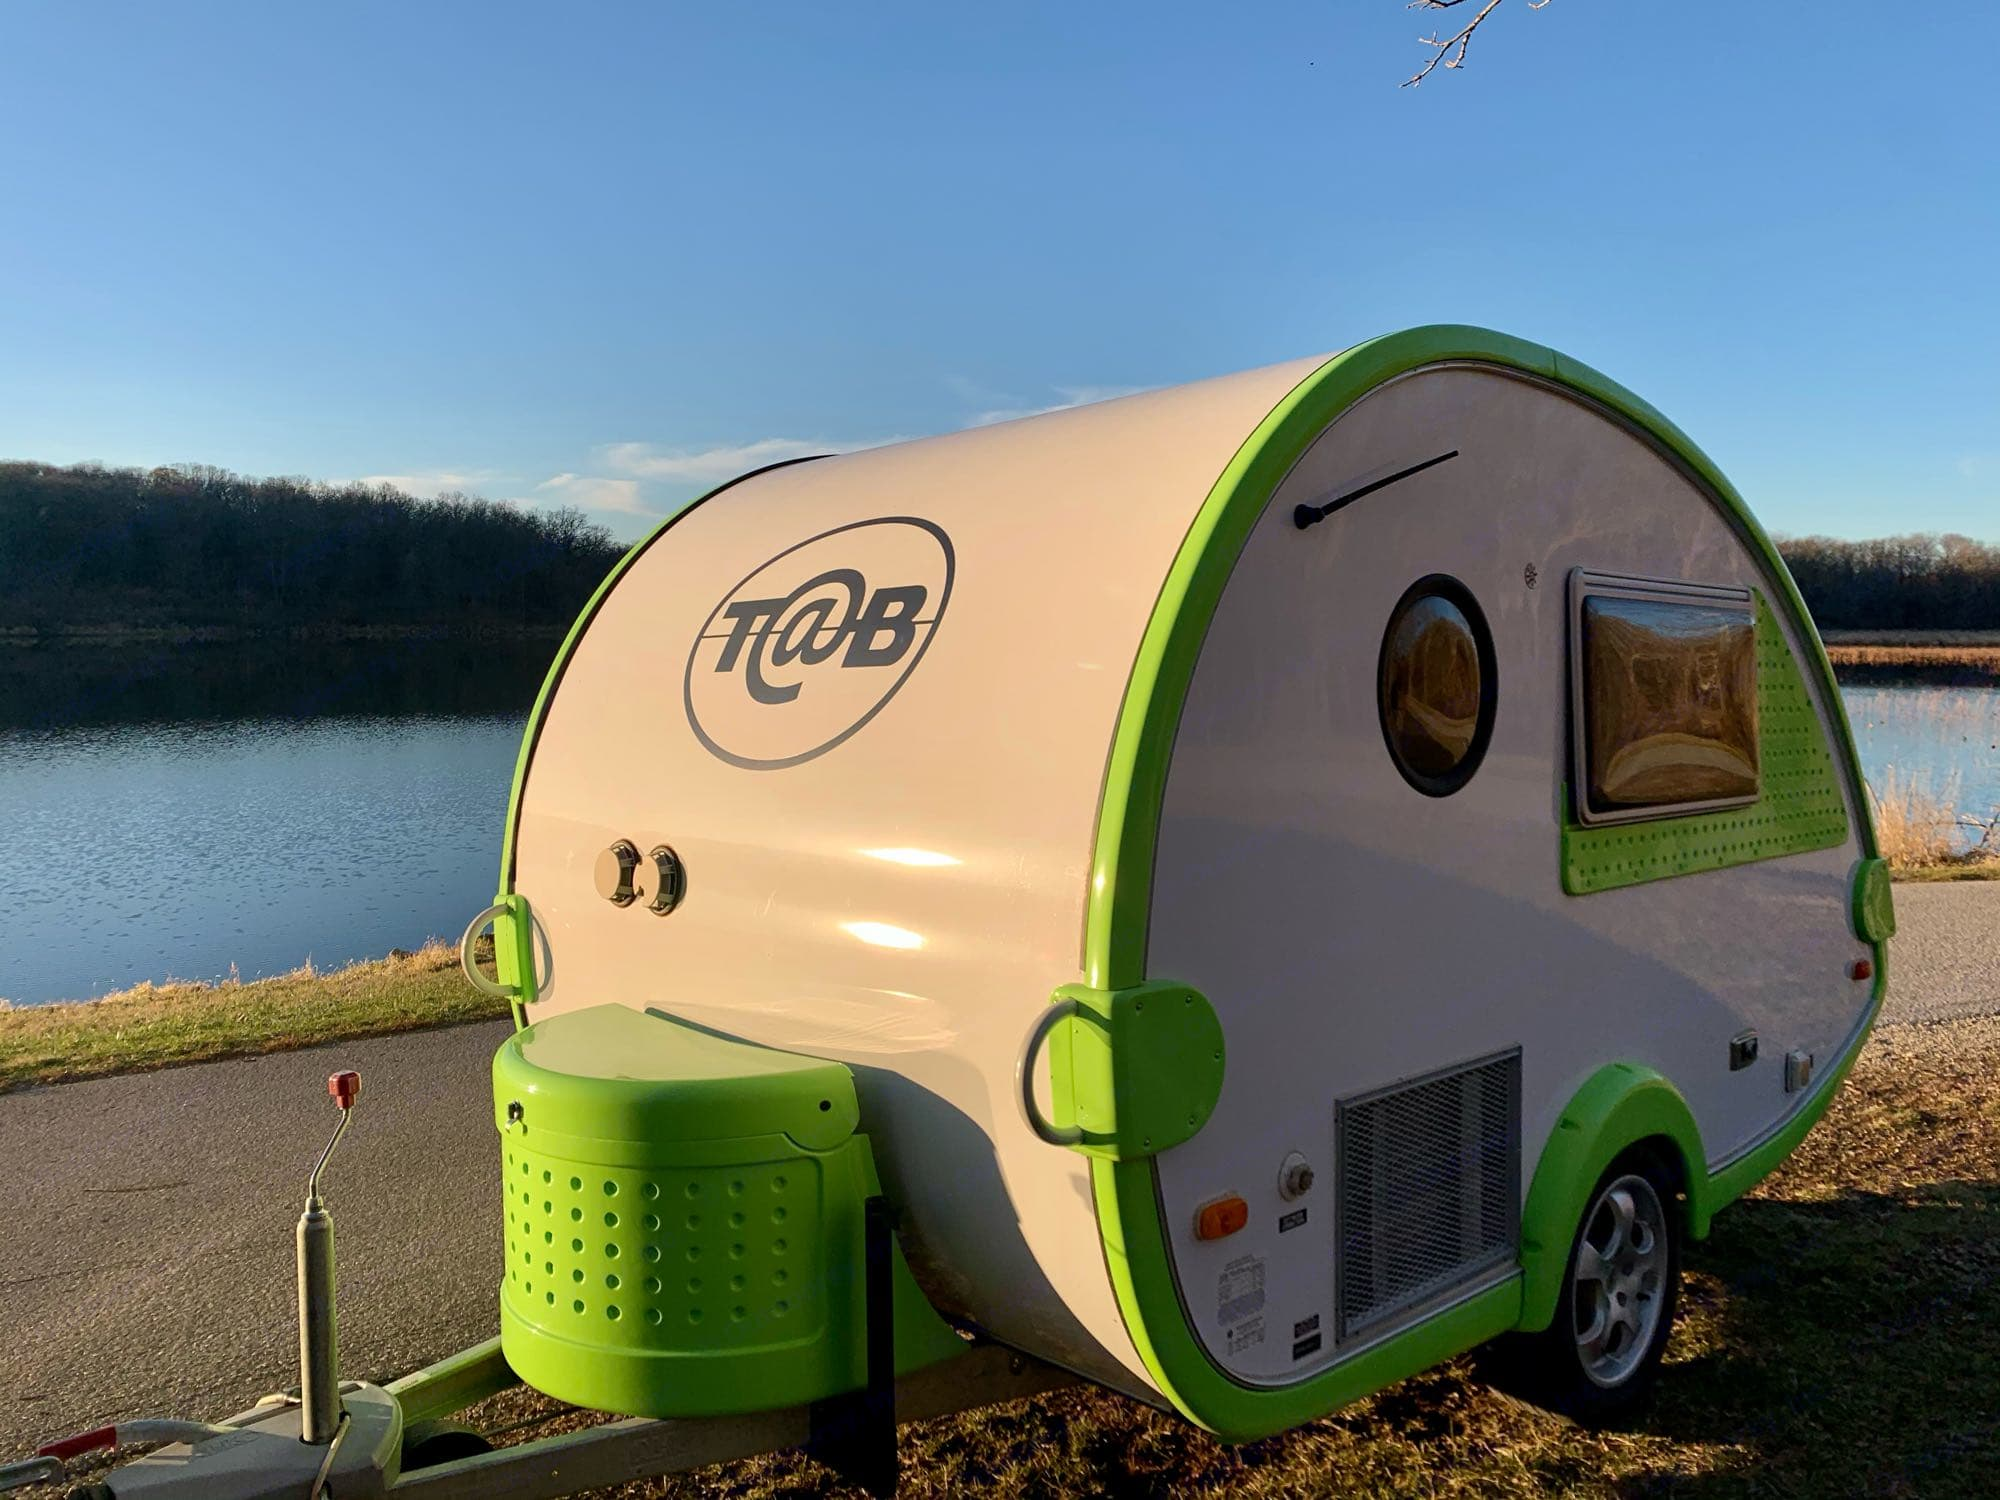 The Pea Pod teardrop camper is a head turner and a great place to lay your head on your adventures. T@B T16 2008